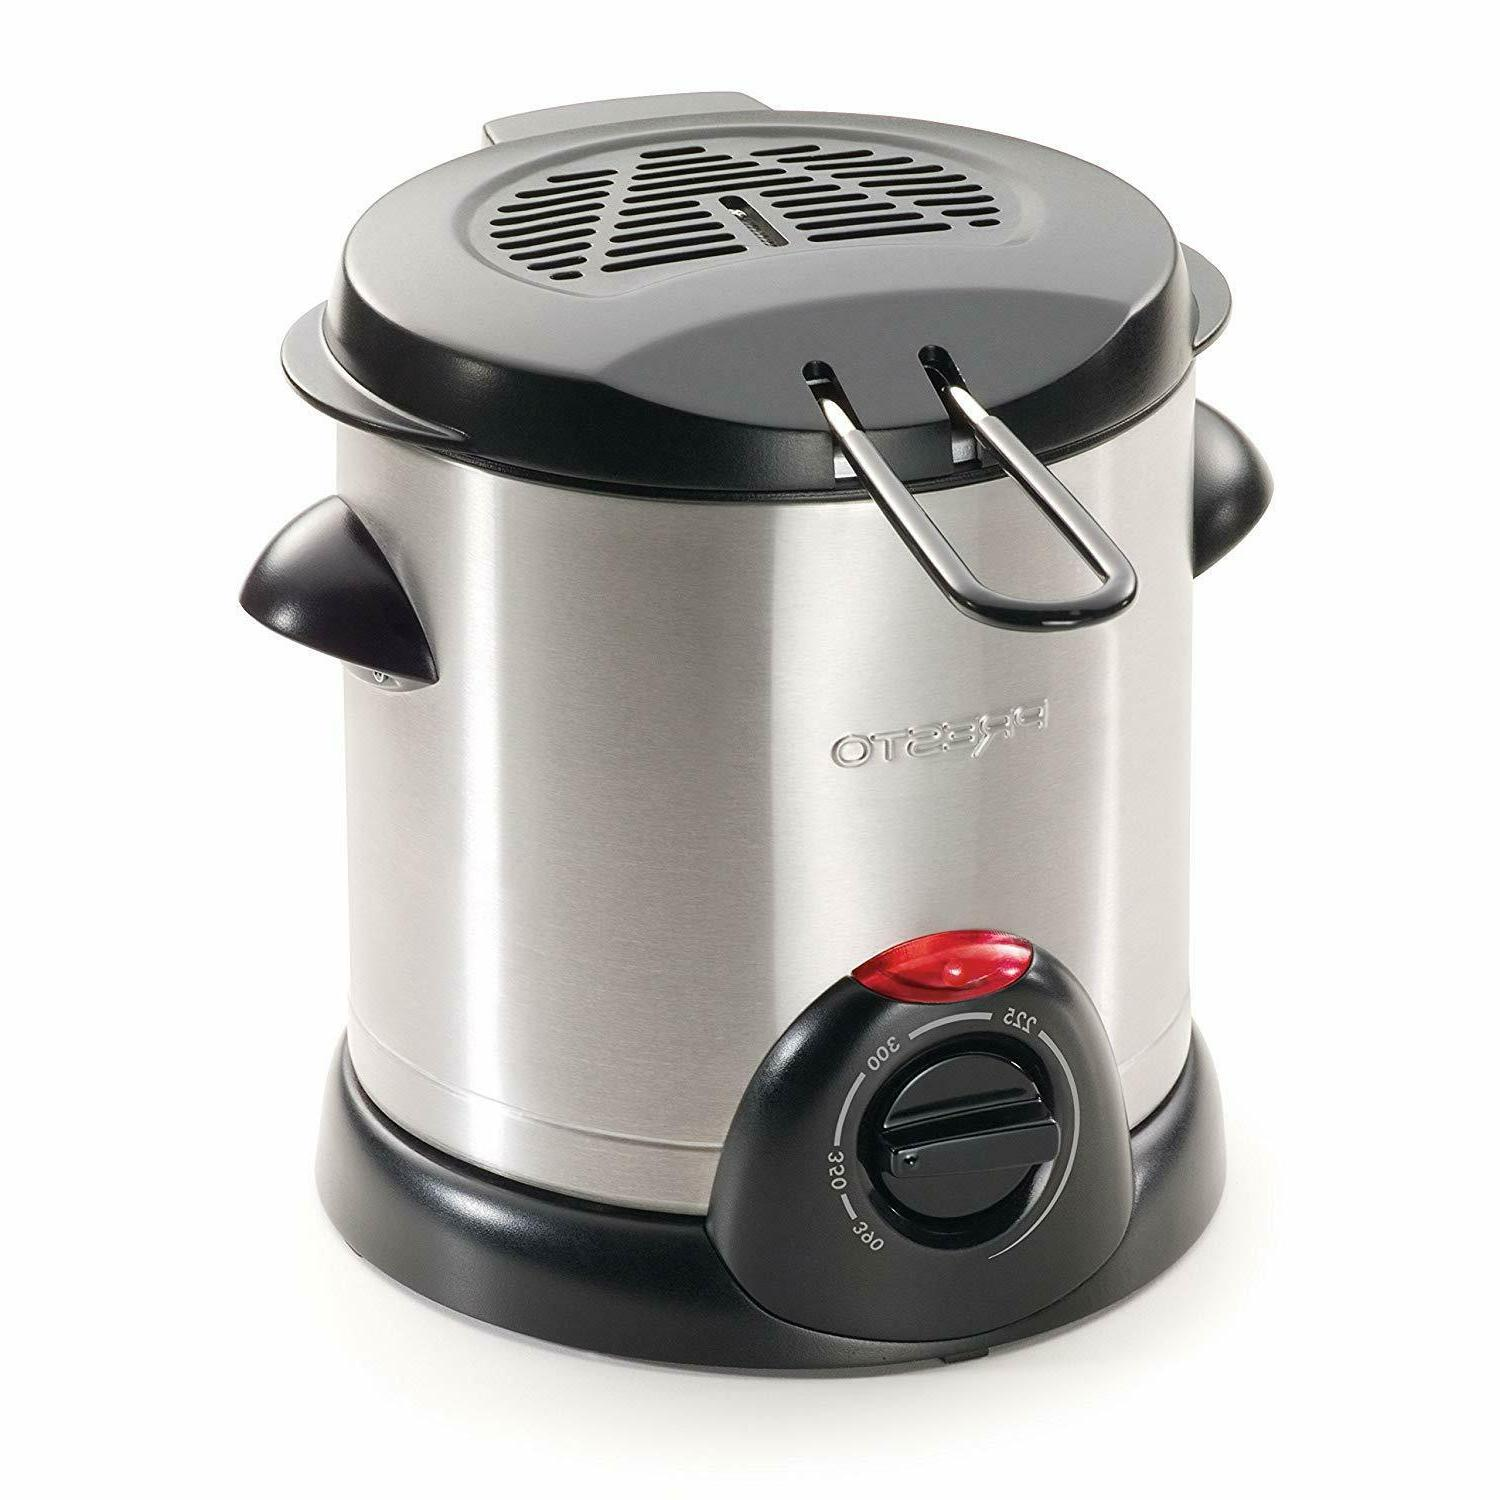 05470 stainless steel electric deep fryer silver